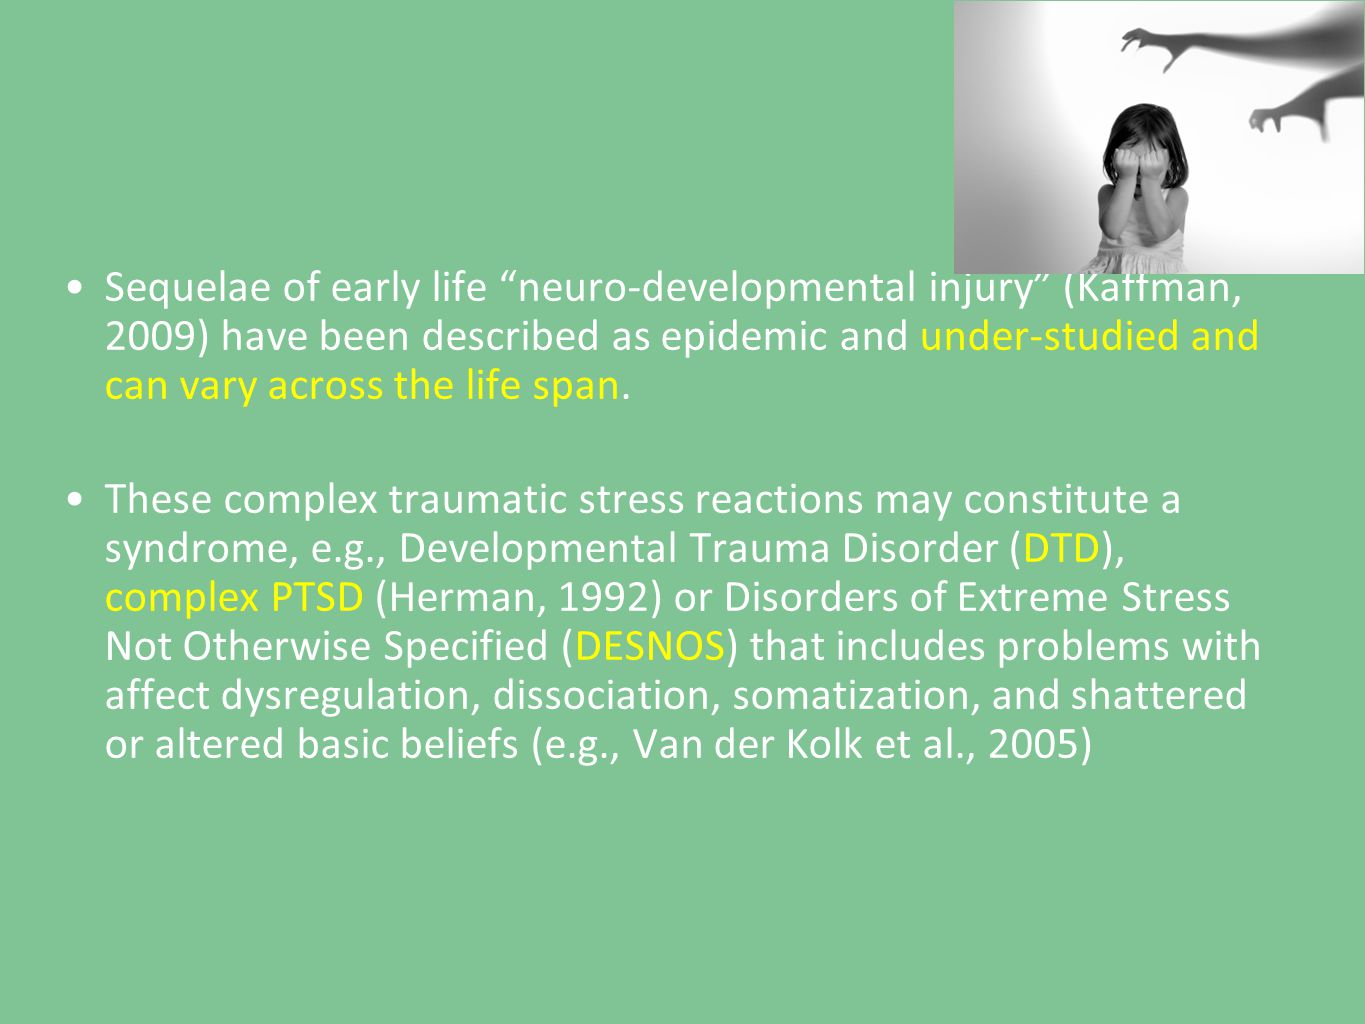 Sequelae of early life neuro-developmental injury (Kaffman, 2009) have been described as epidemic and under-studied and can vary across the life span.